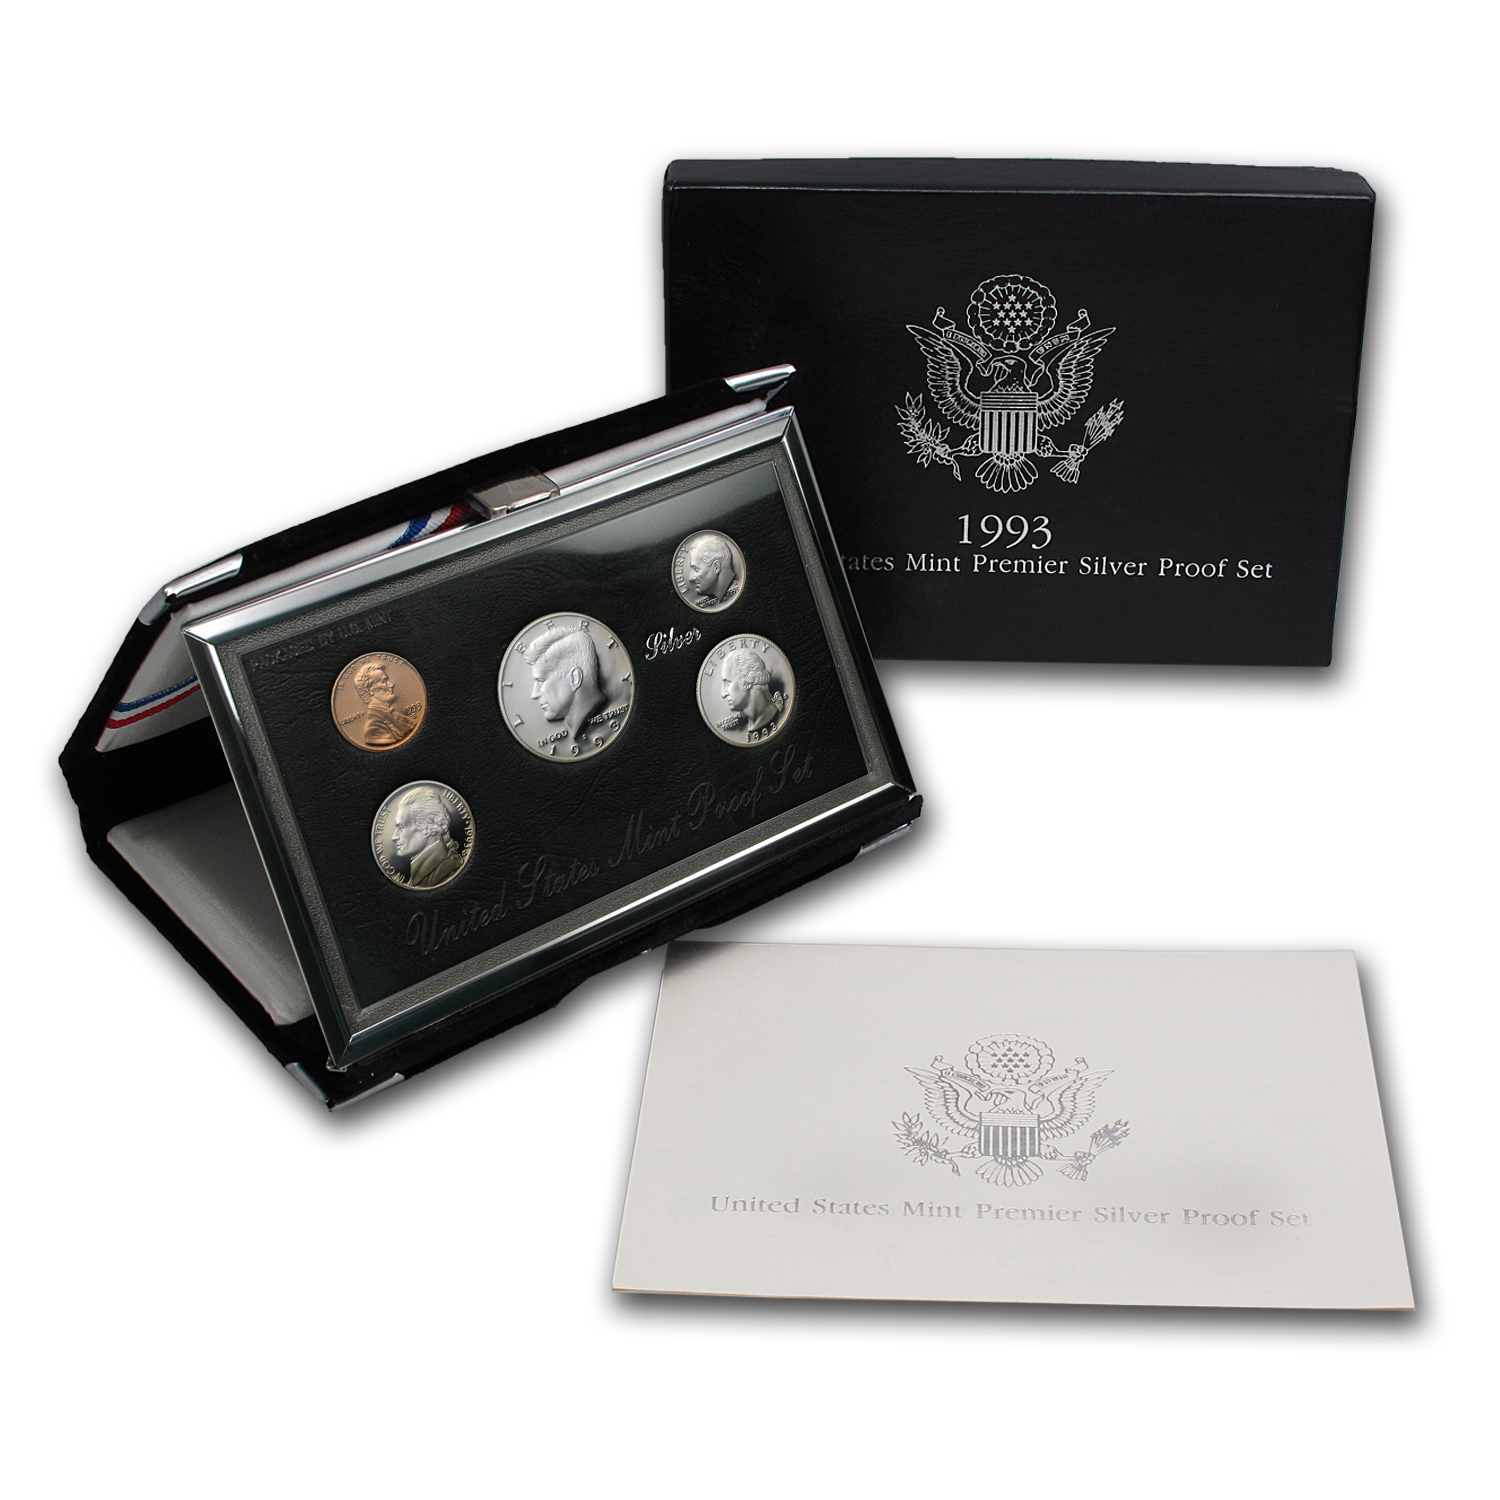 1993 Premier Silver Proof Set